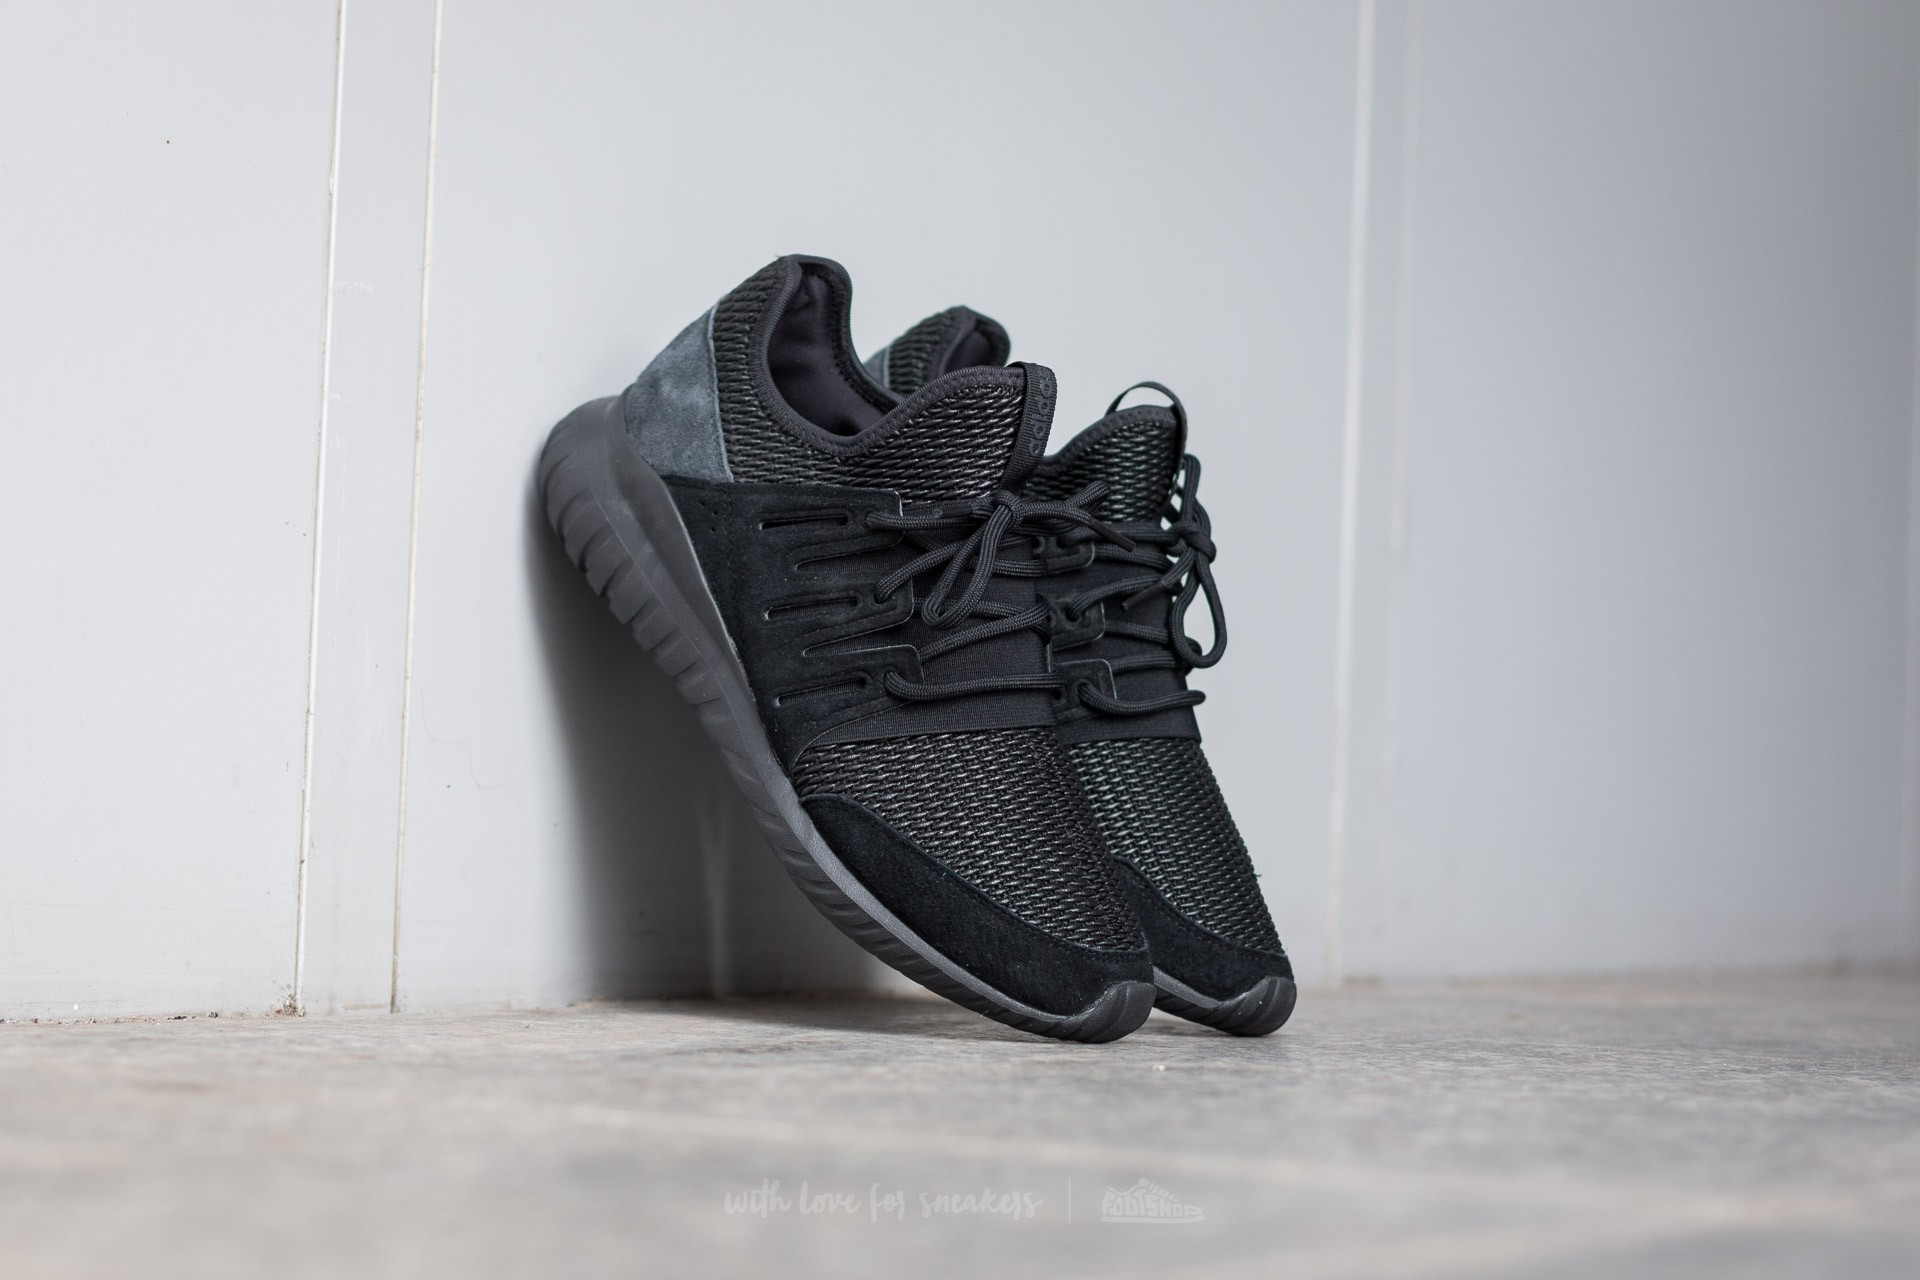 Köp adidas Originals Tubular Viral W Core Black / Core White Svarta